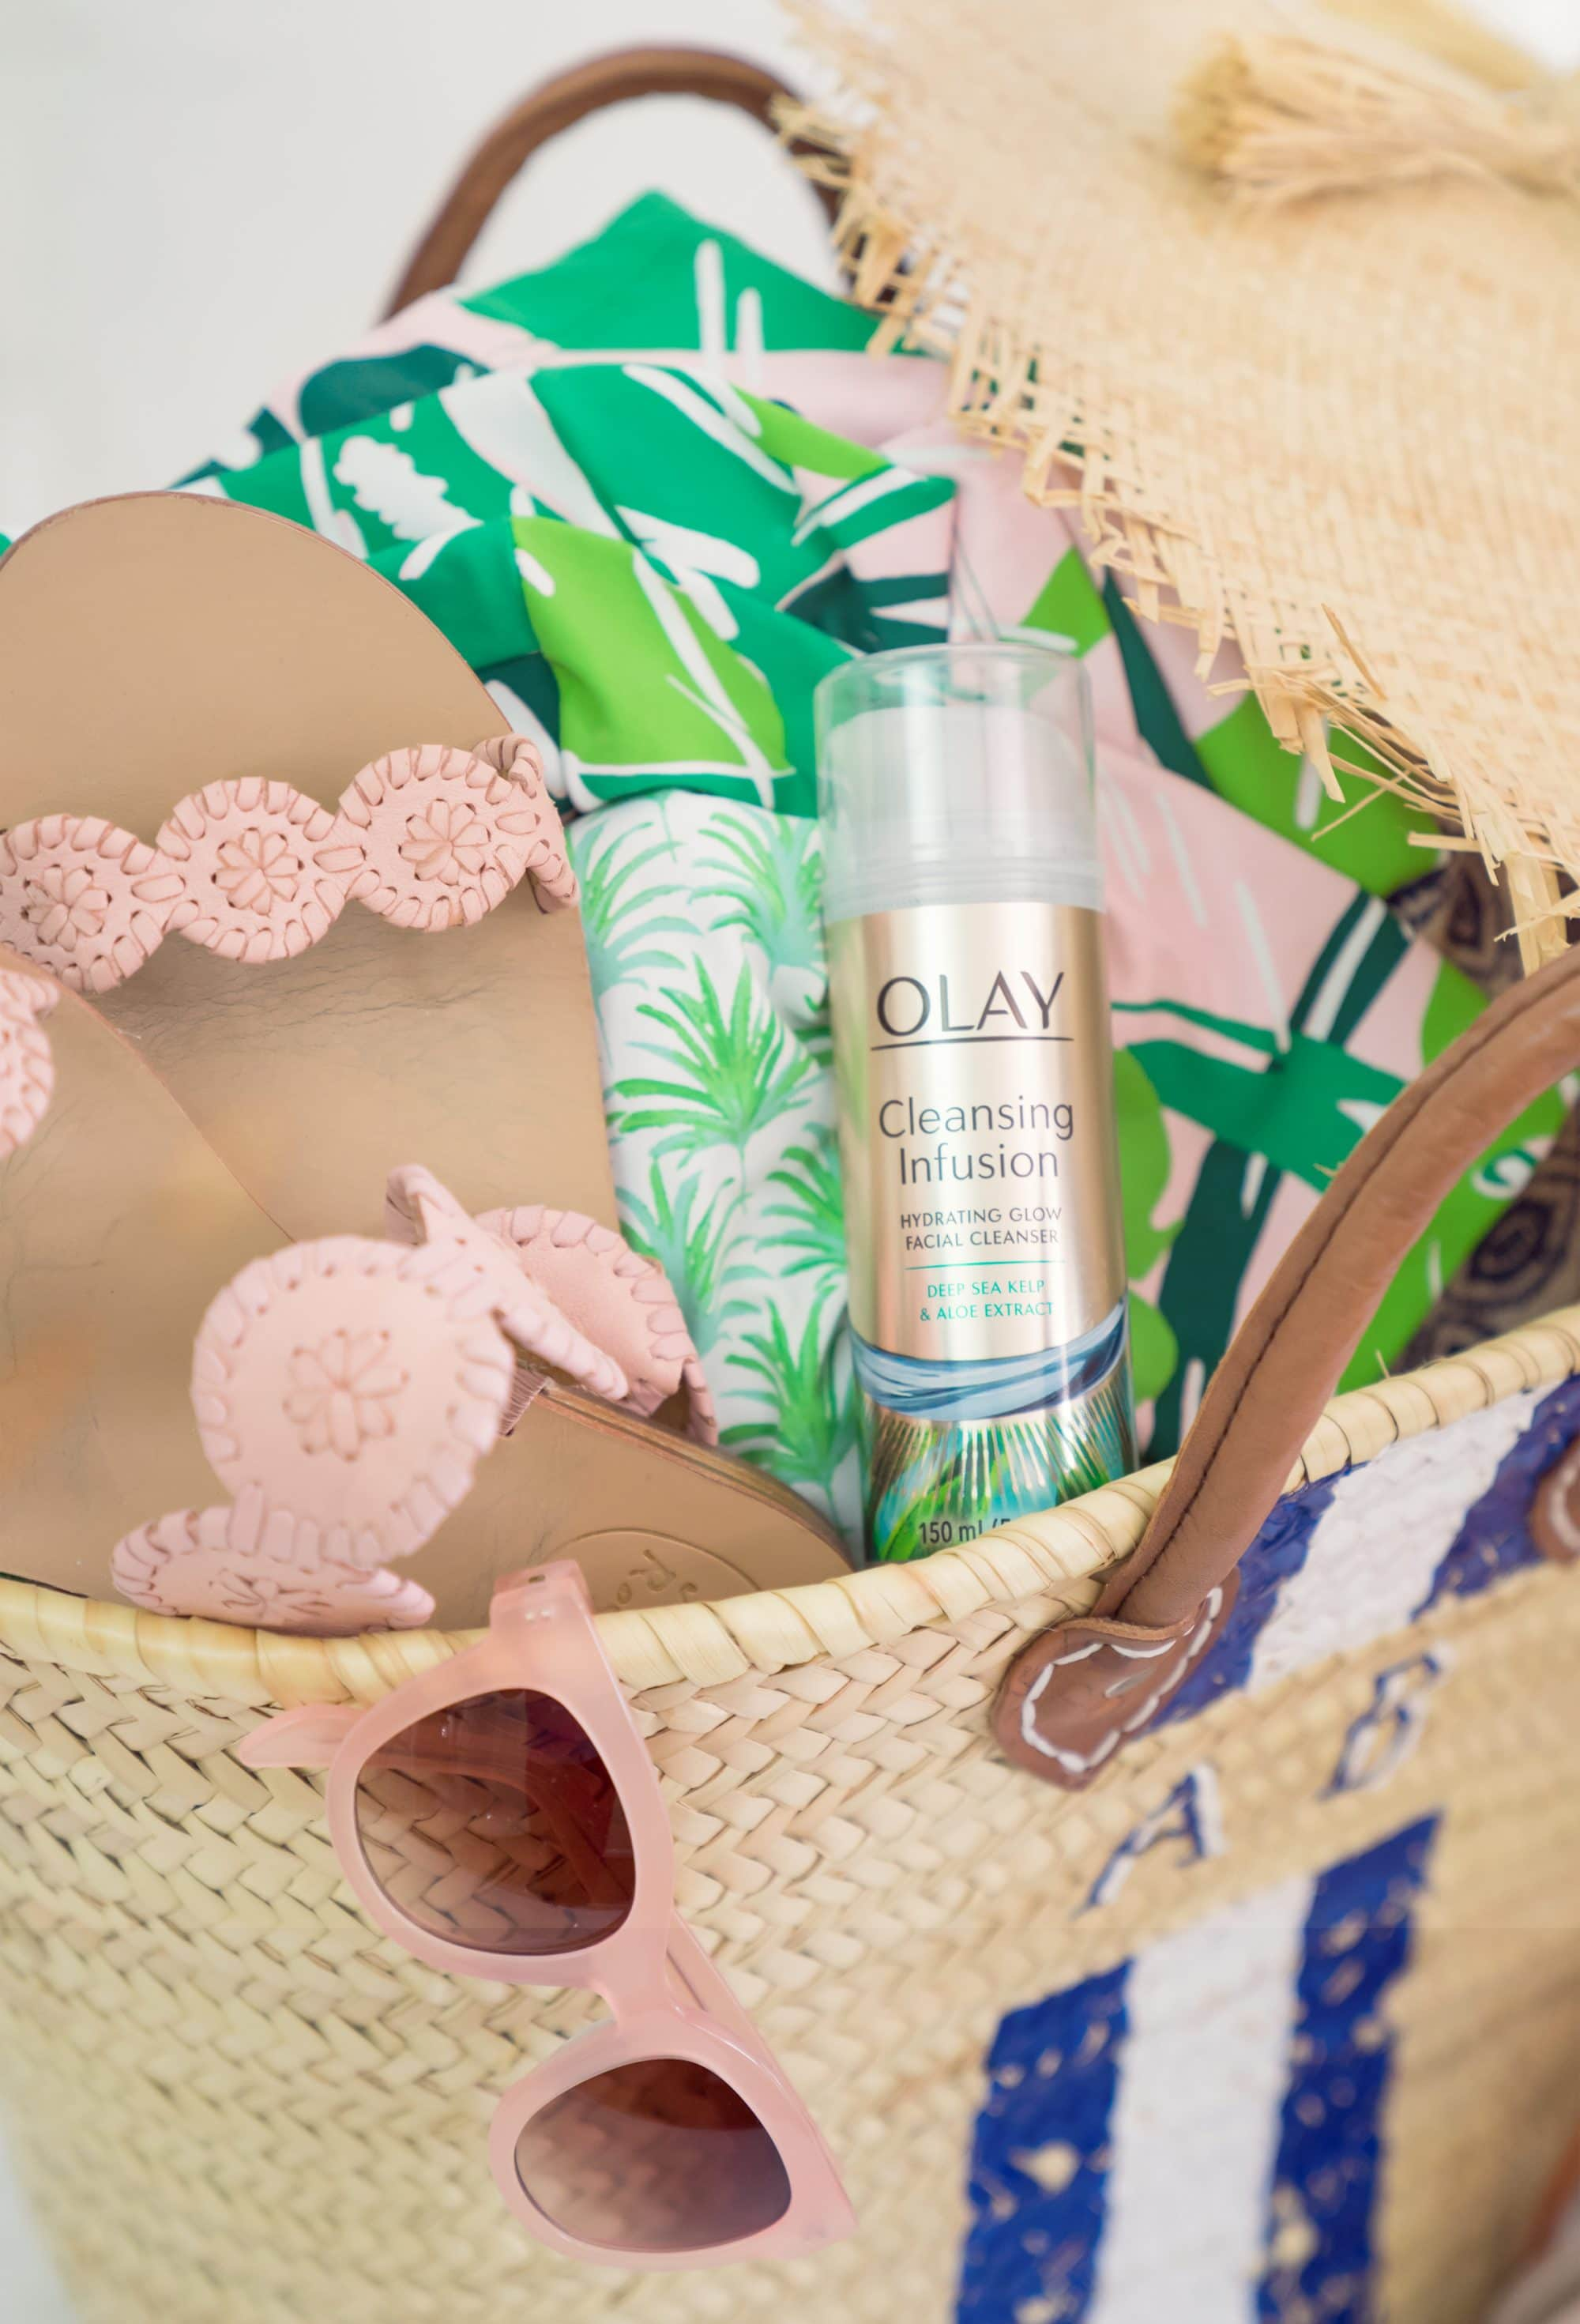 Ashley Brooke - Olay Cleansing Infusion Facial Cleanser with Deep Sea Kelp | www.ashleybrookedesigns.com